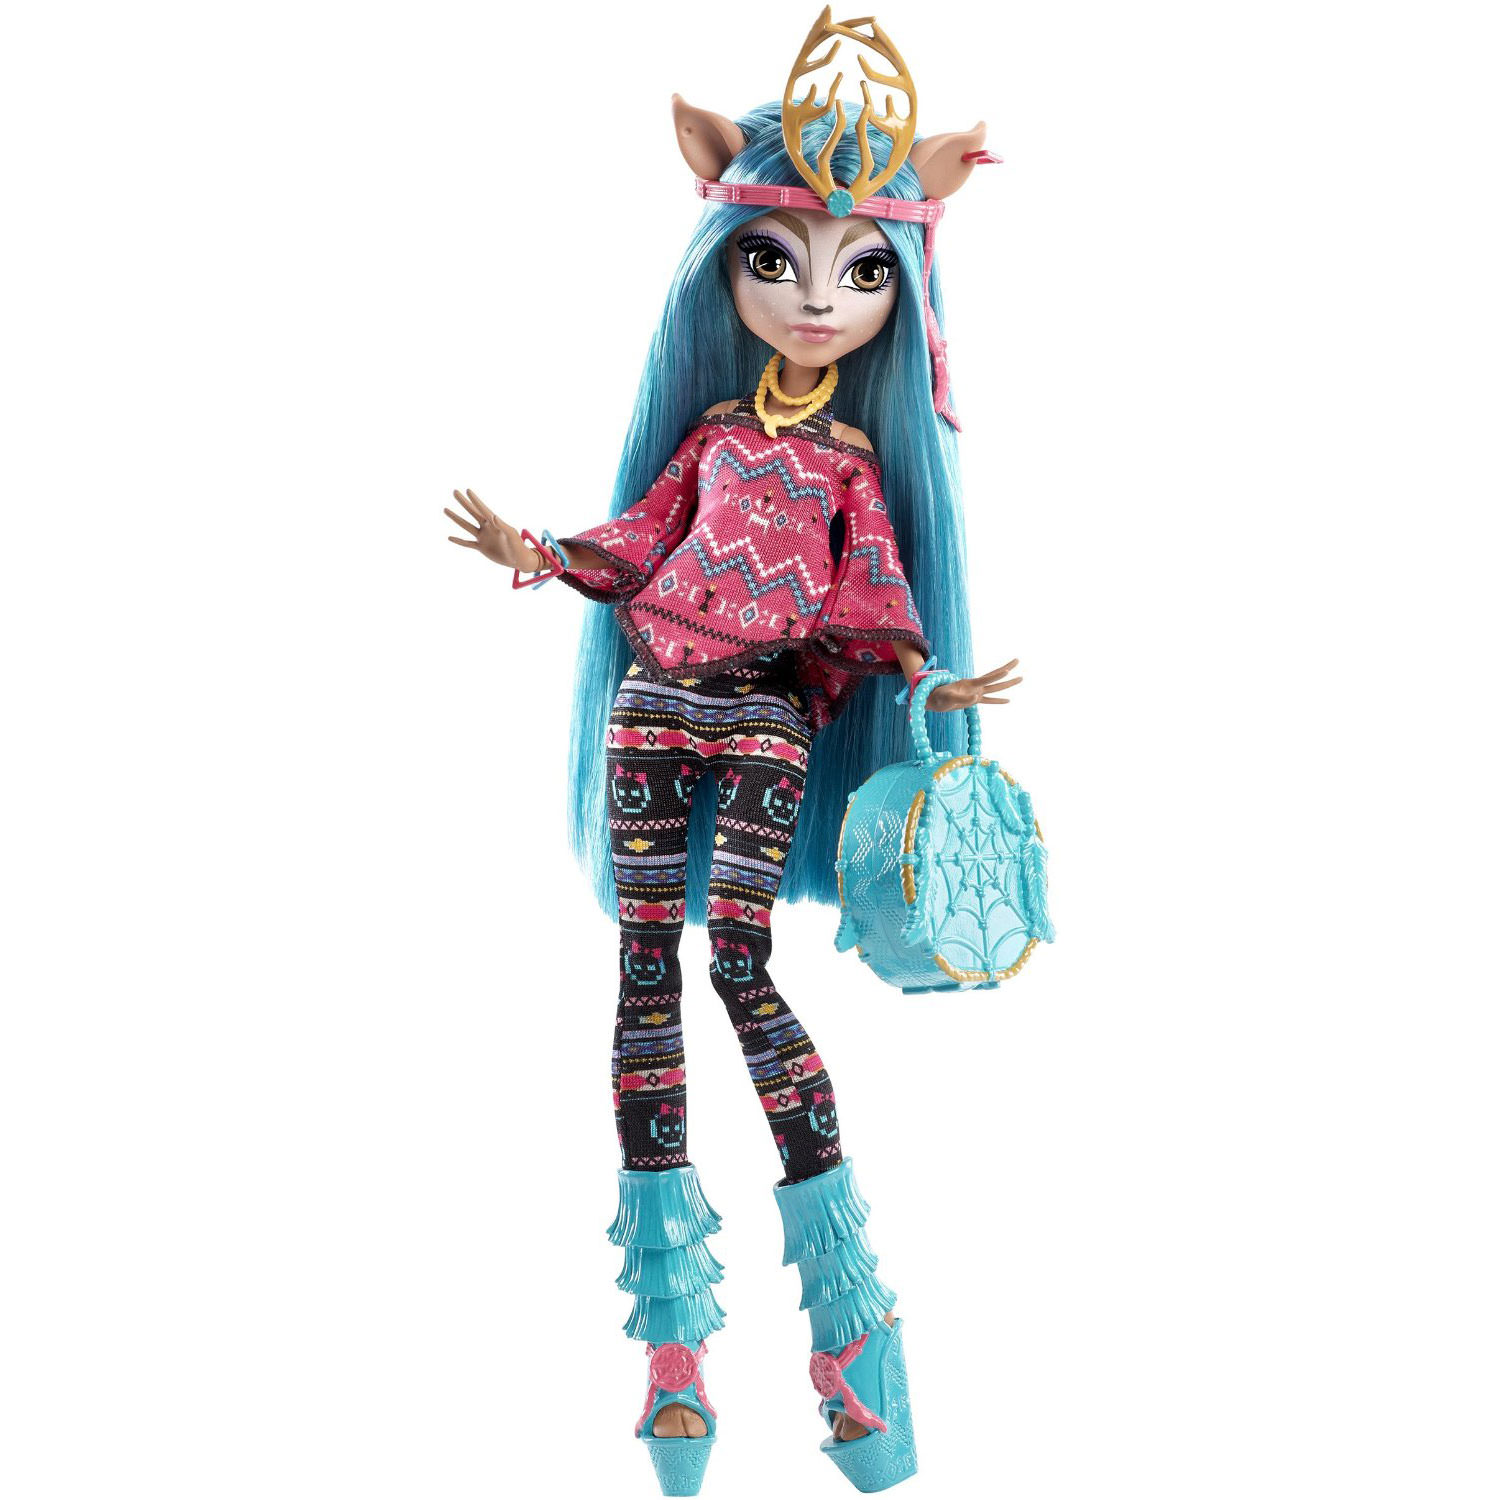 monster high brand boo students isi dawndancer doll at hobby warehouse. Black Bedroom Furniture Sets. Home Design Ideas